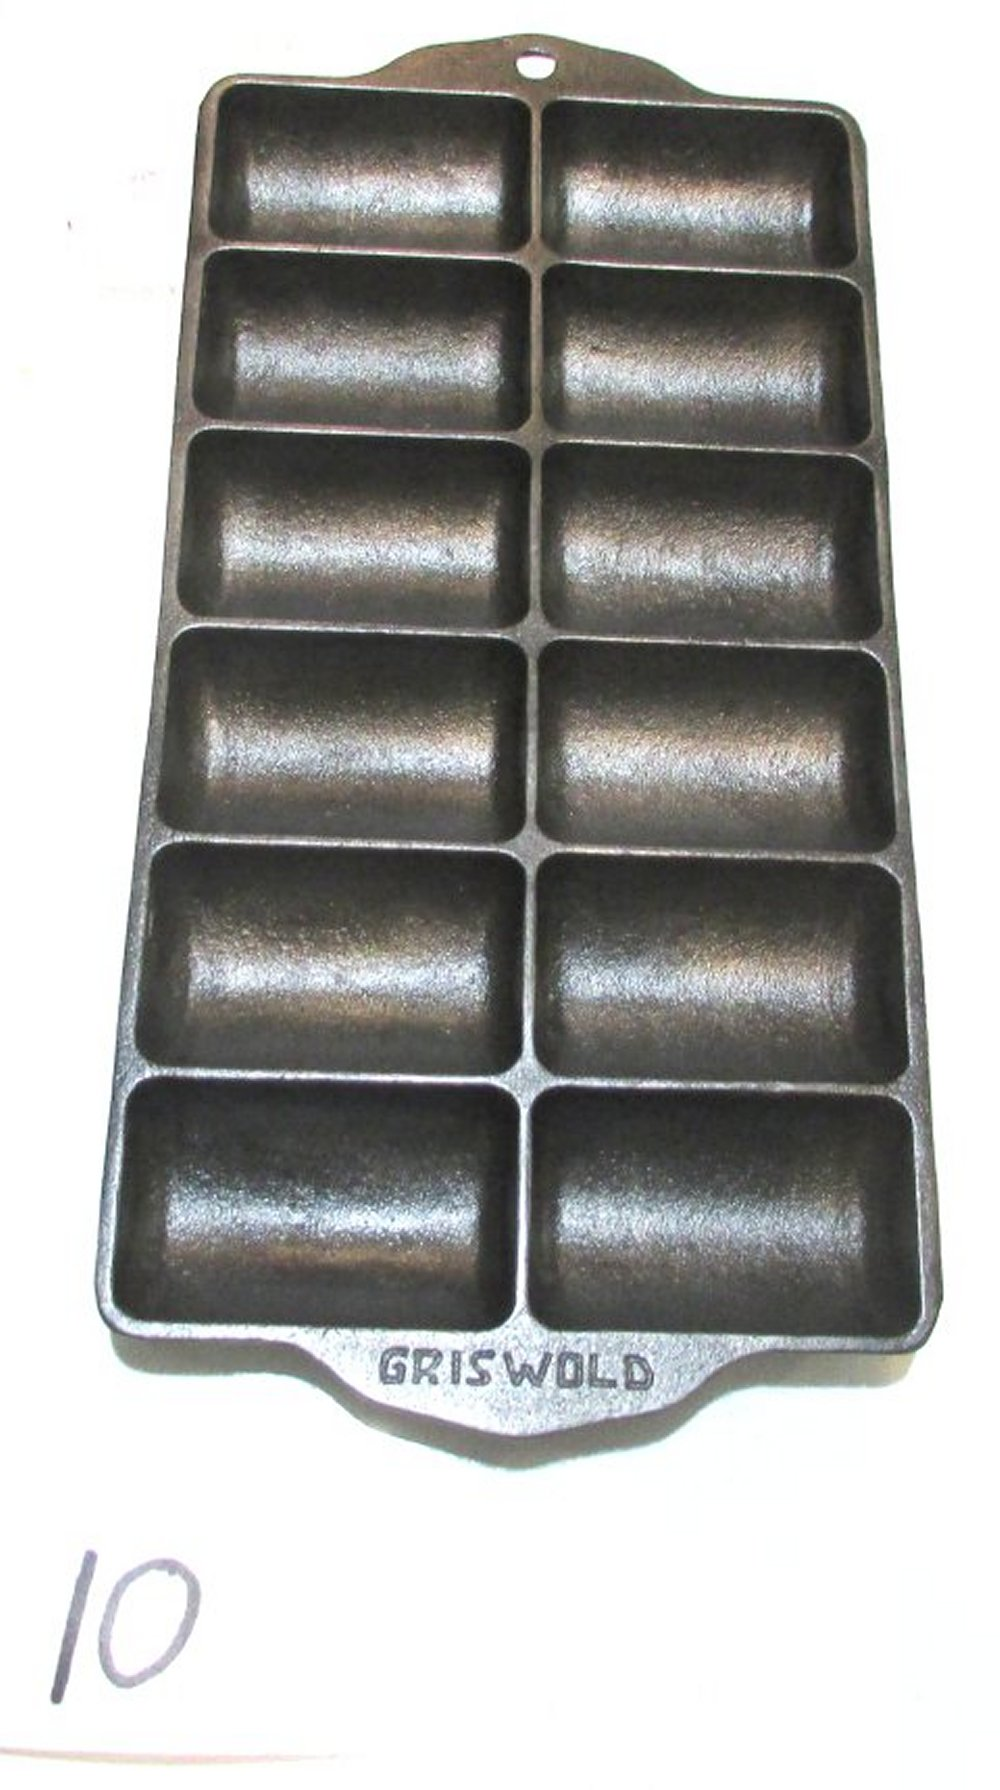 #11 Griswold EPU French Roll Pan